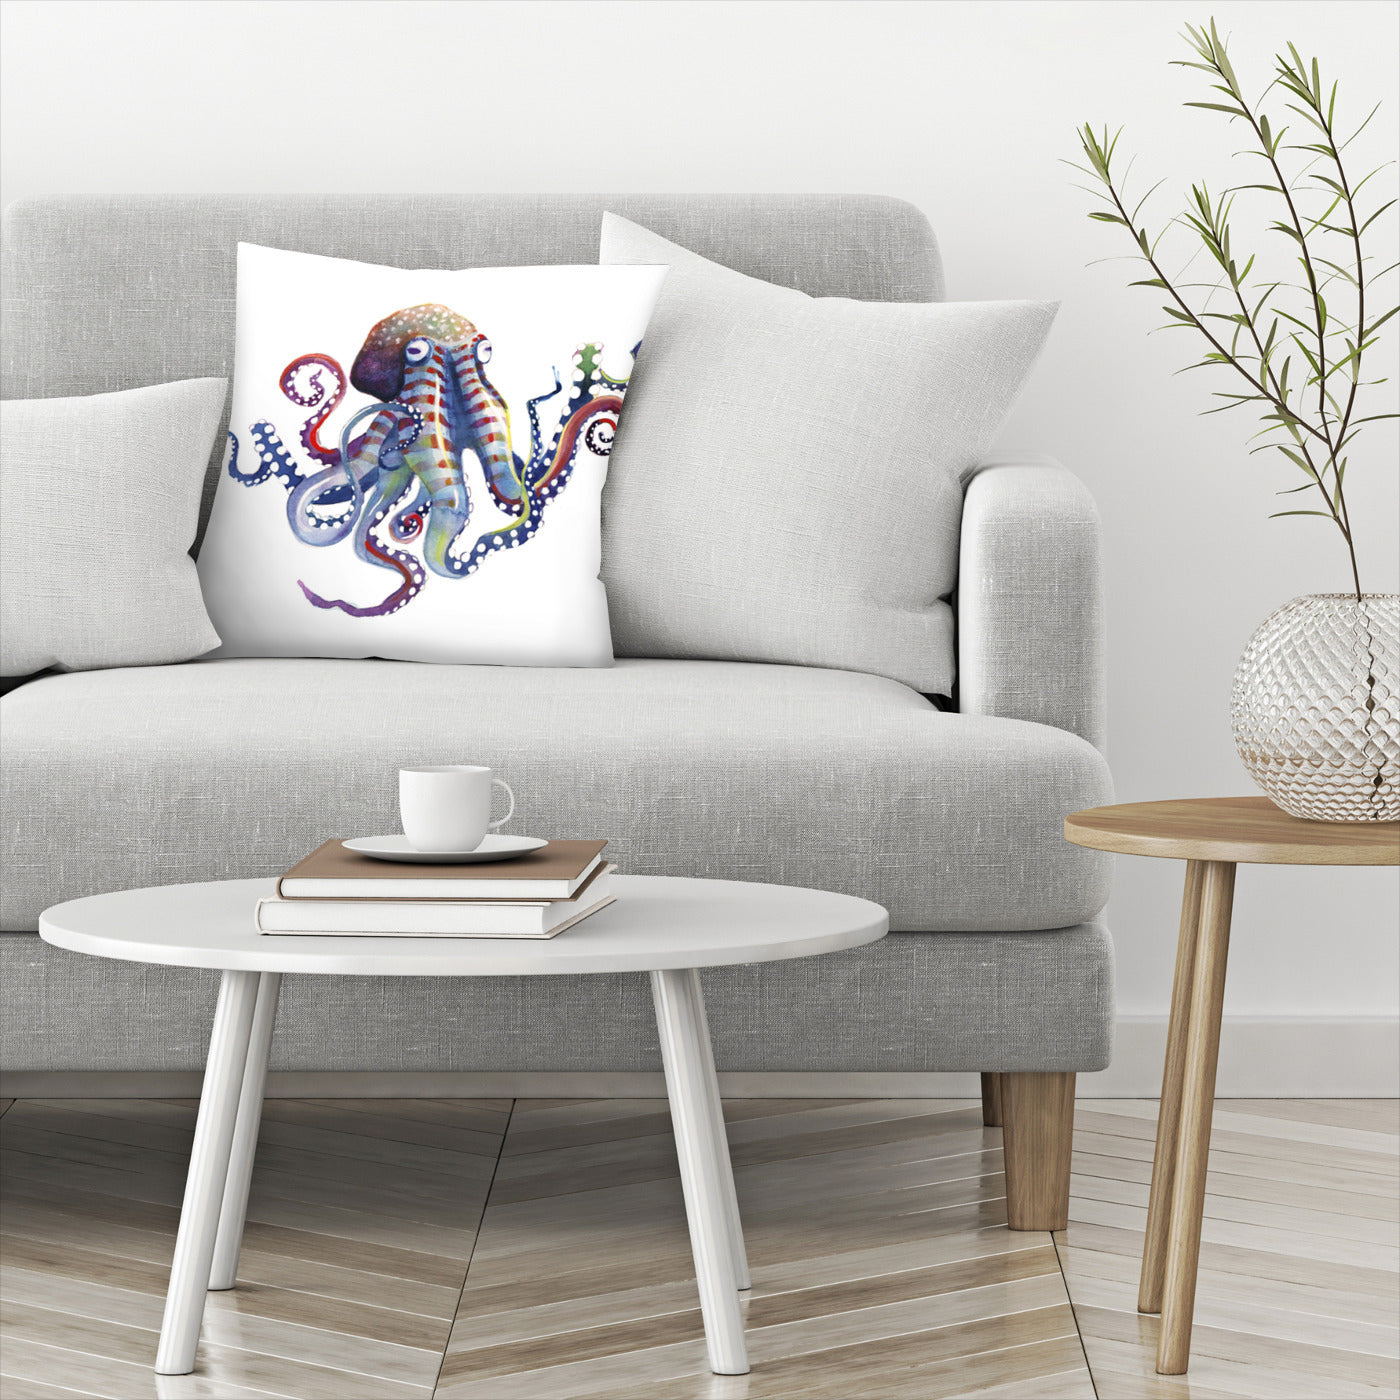 Octopus by Sam Nagel Decorative Pillow - Decorative Pillow - Americanflat